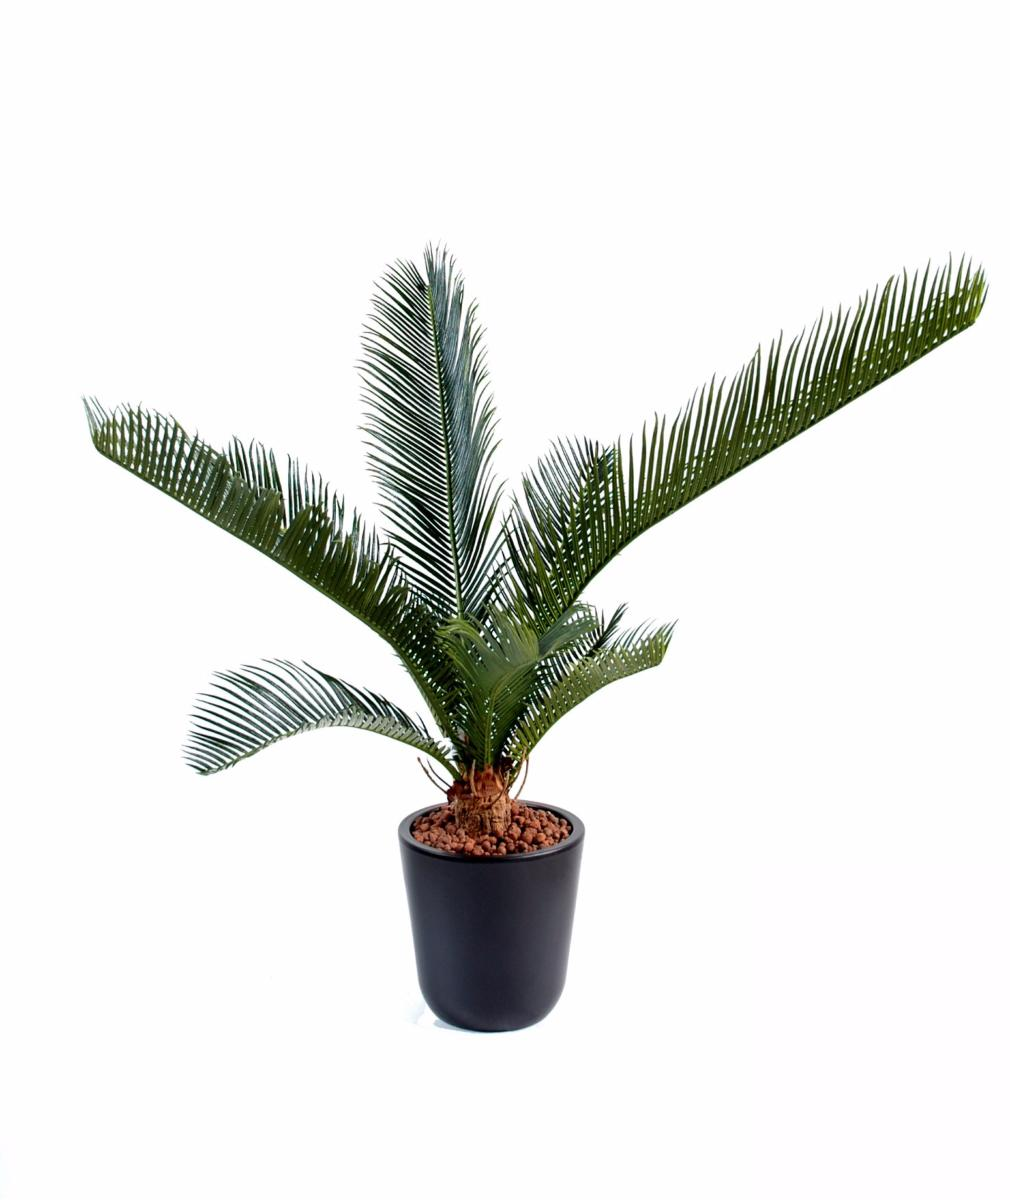 Palmier artificiel cycas baby 10 feuilles int rieur for Palmier artificiel interieur